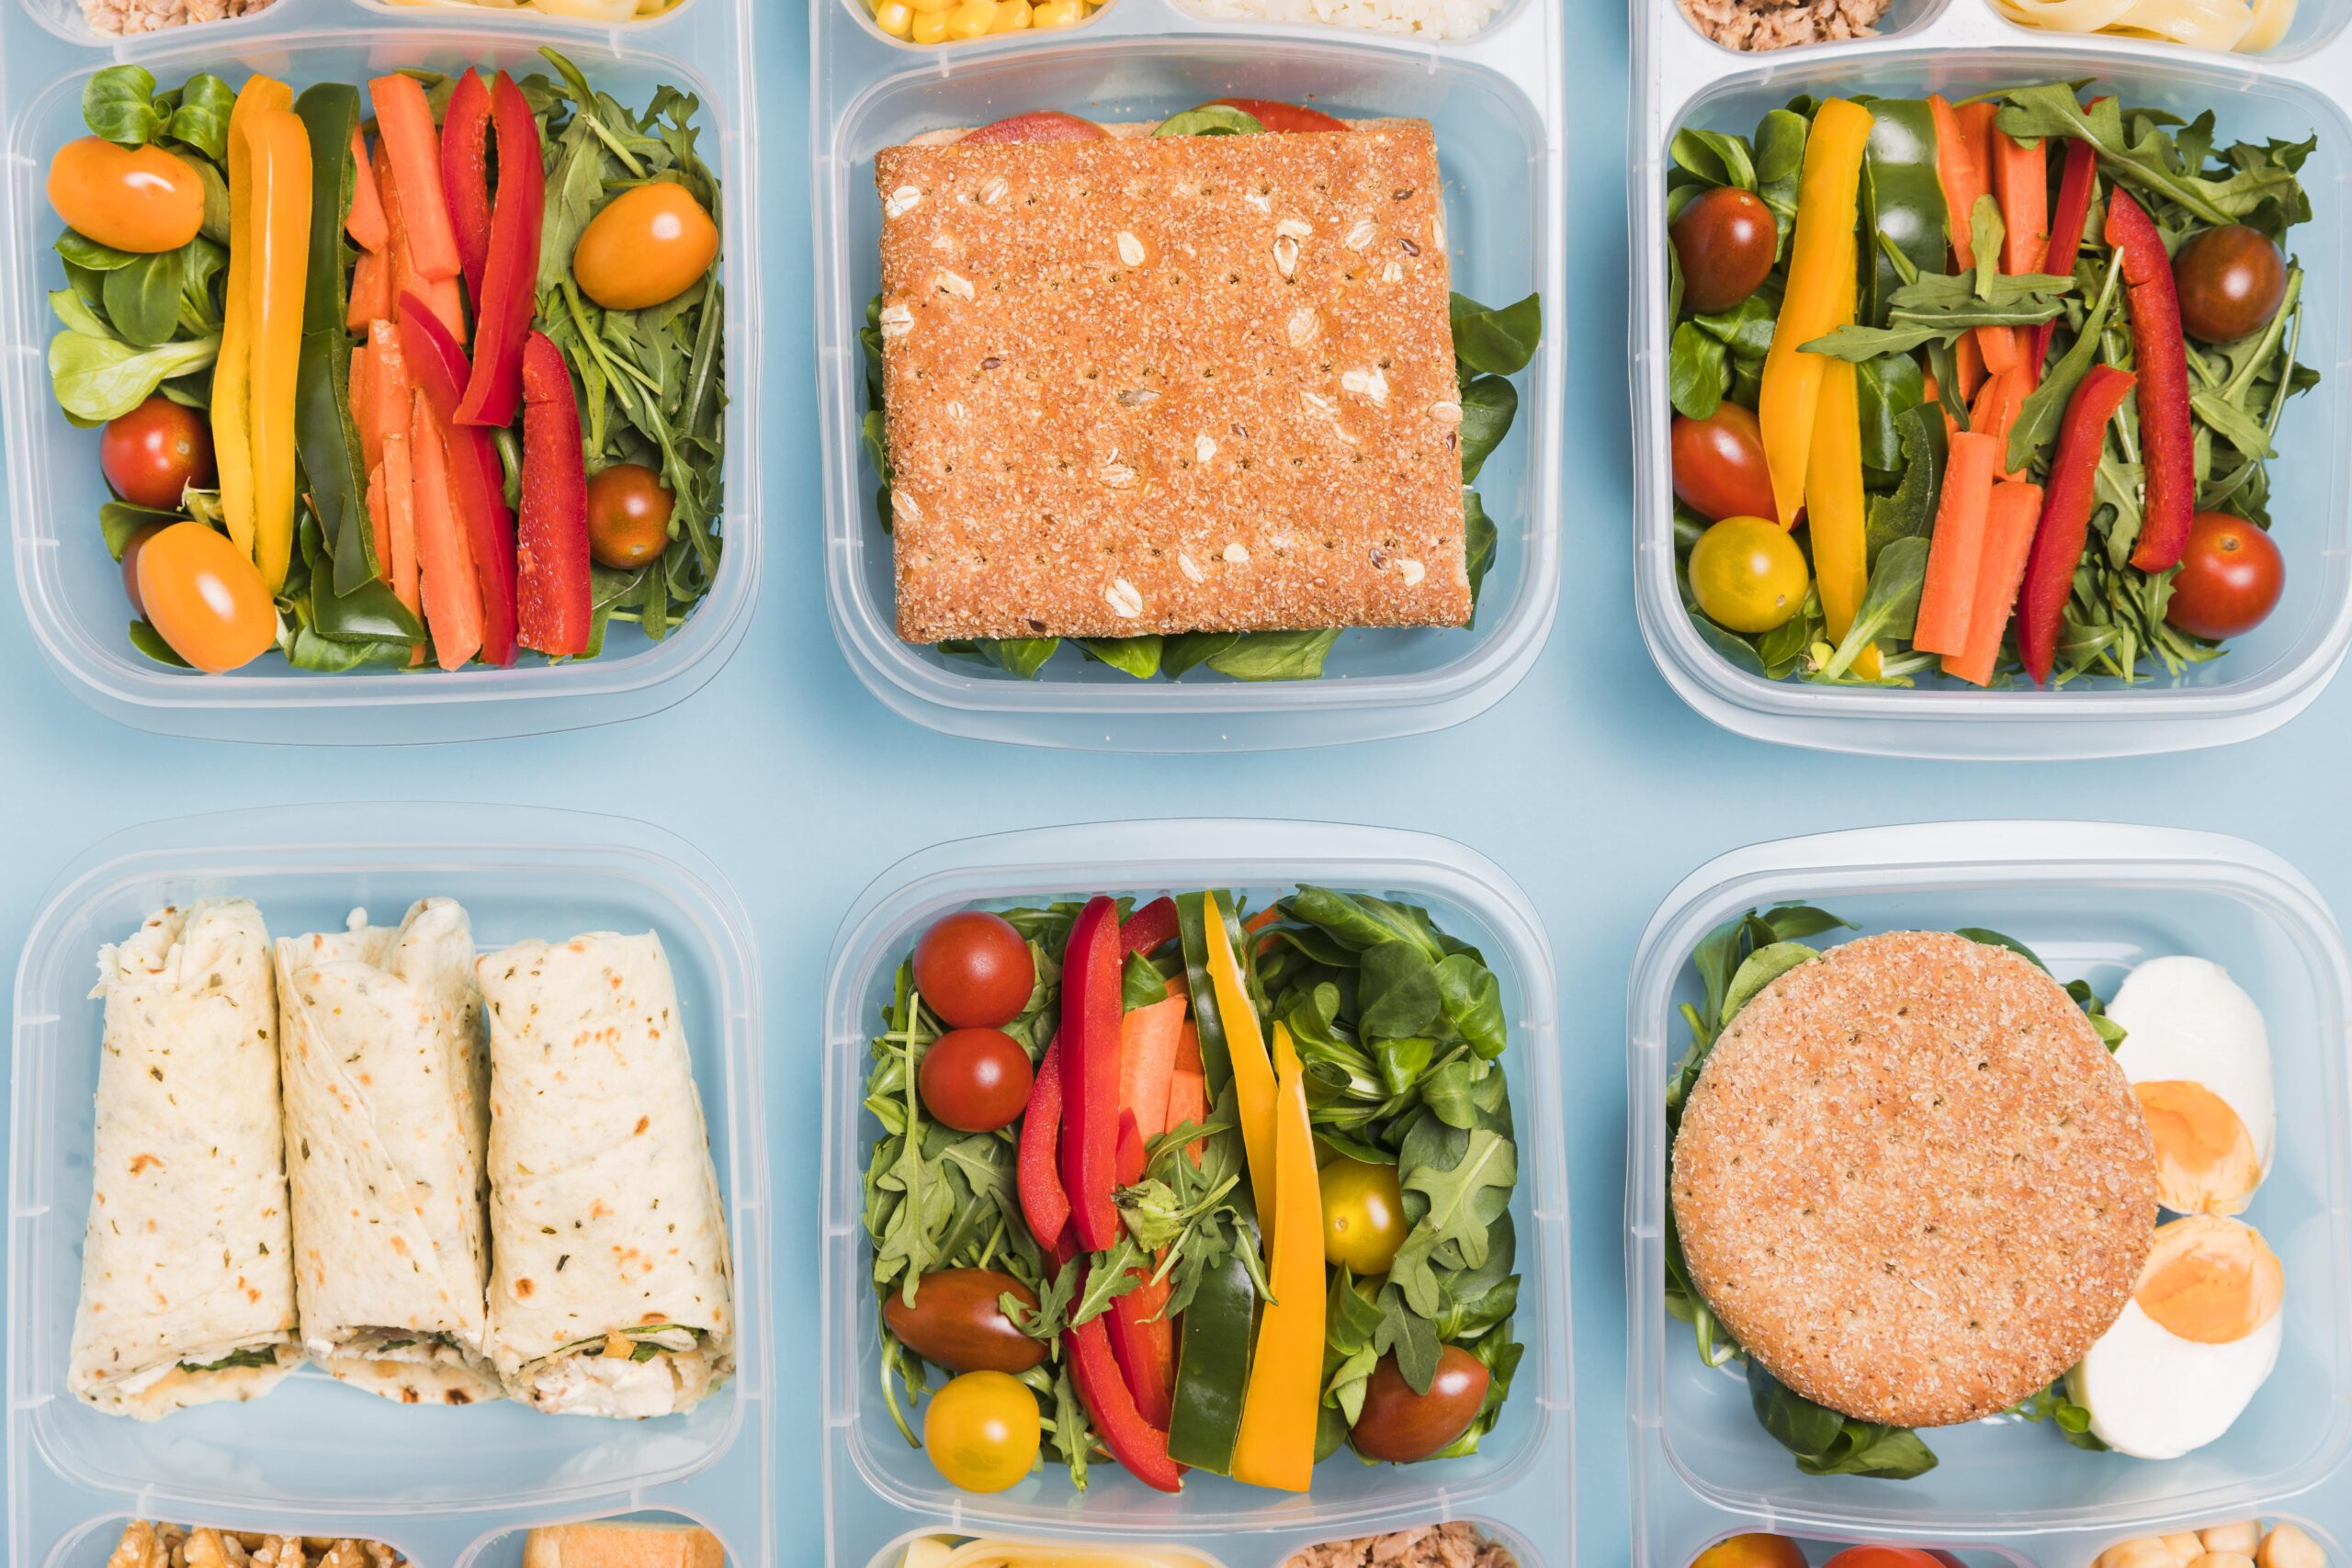 Healthy Meals: Delivery Services that Deliver on Quality - Foodistan